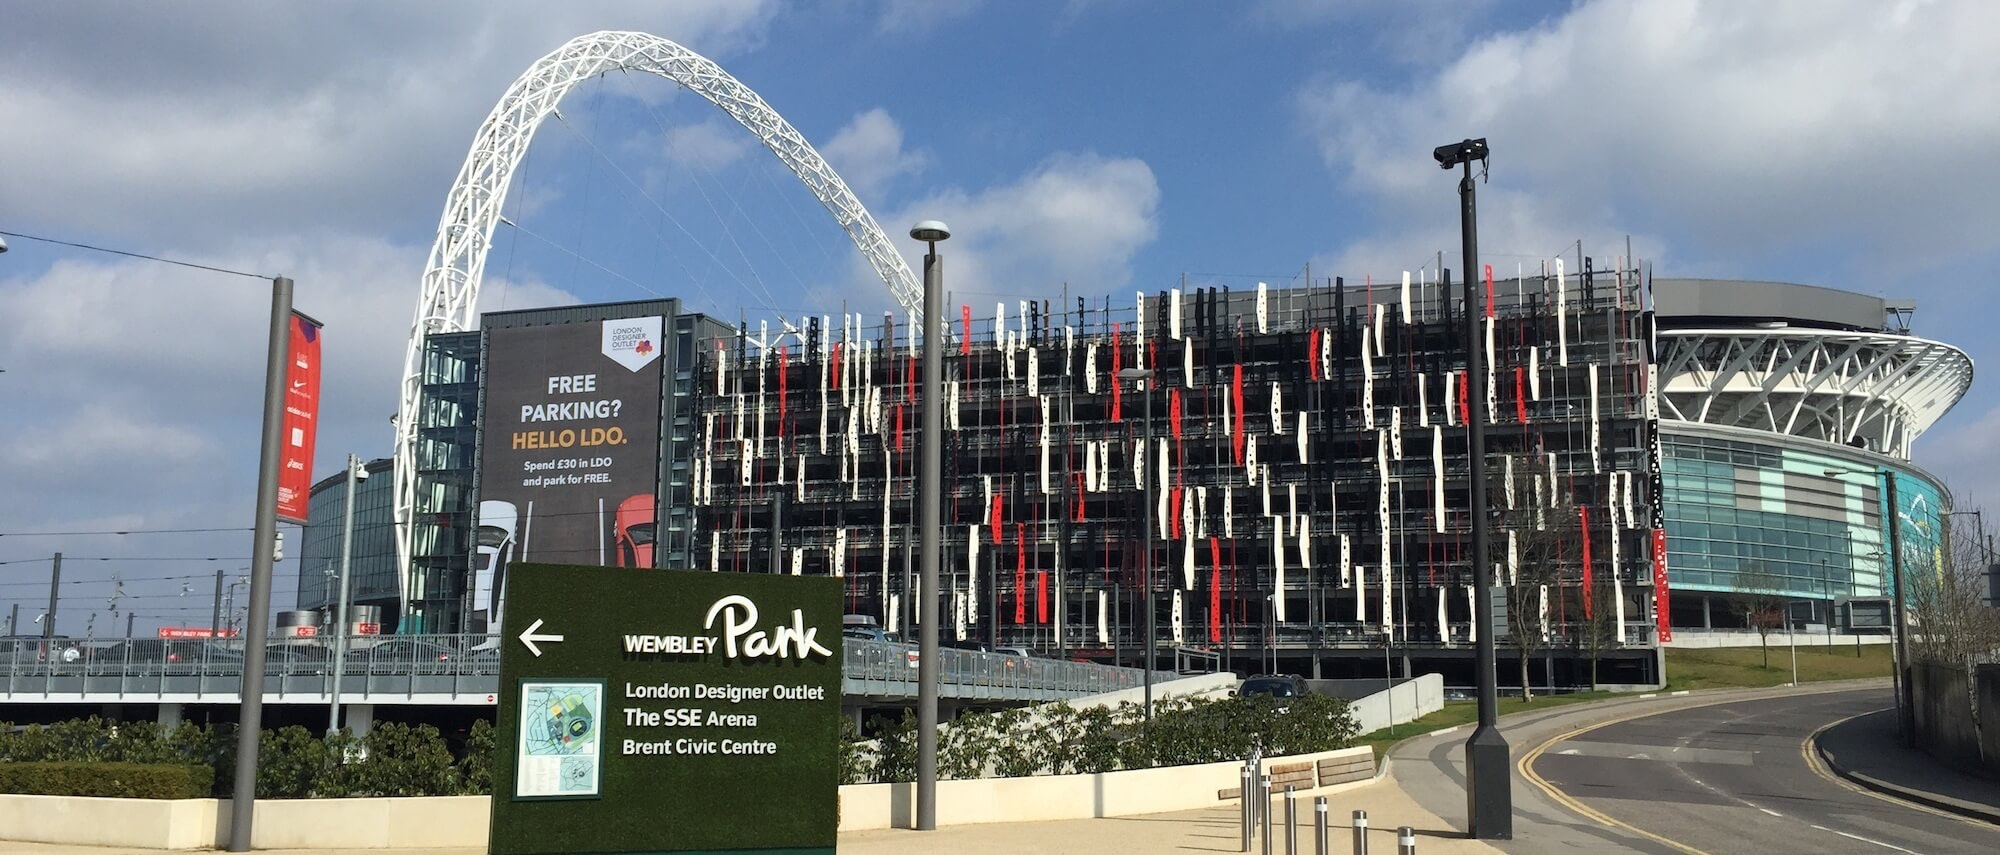 Stay In Where The To Plum Near Wembley London Guide zAf7xwf